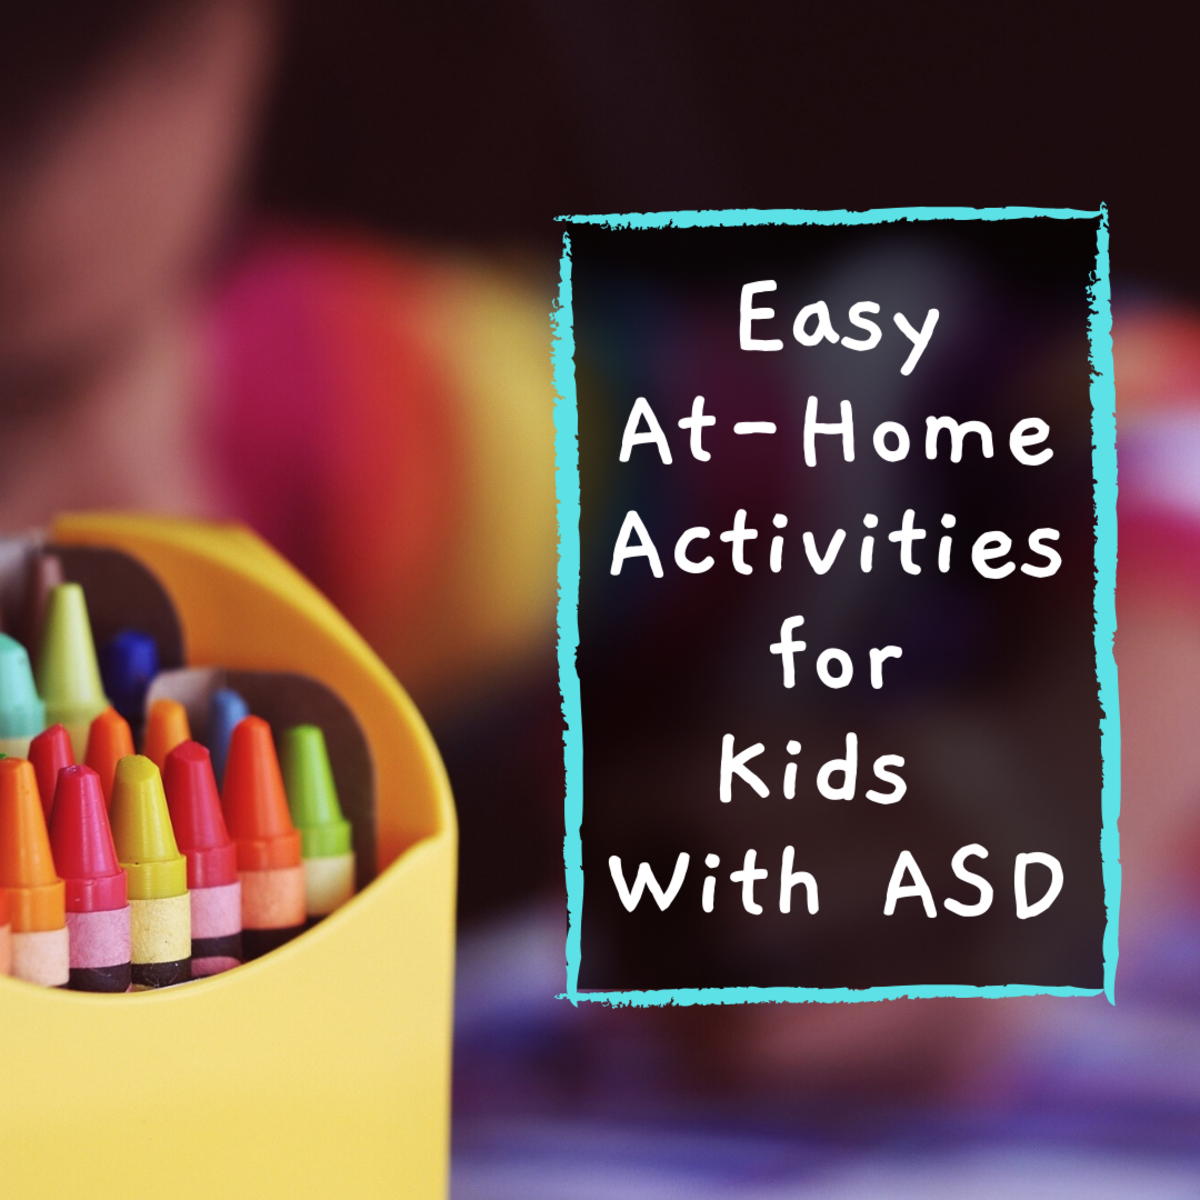 Games and Activities for Preschool Children With Autism